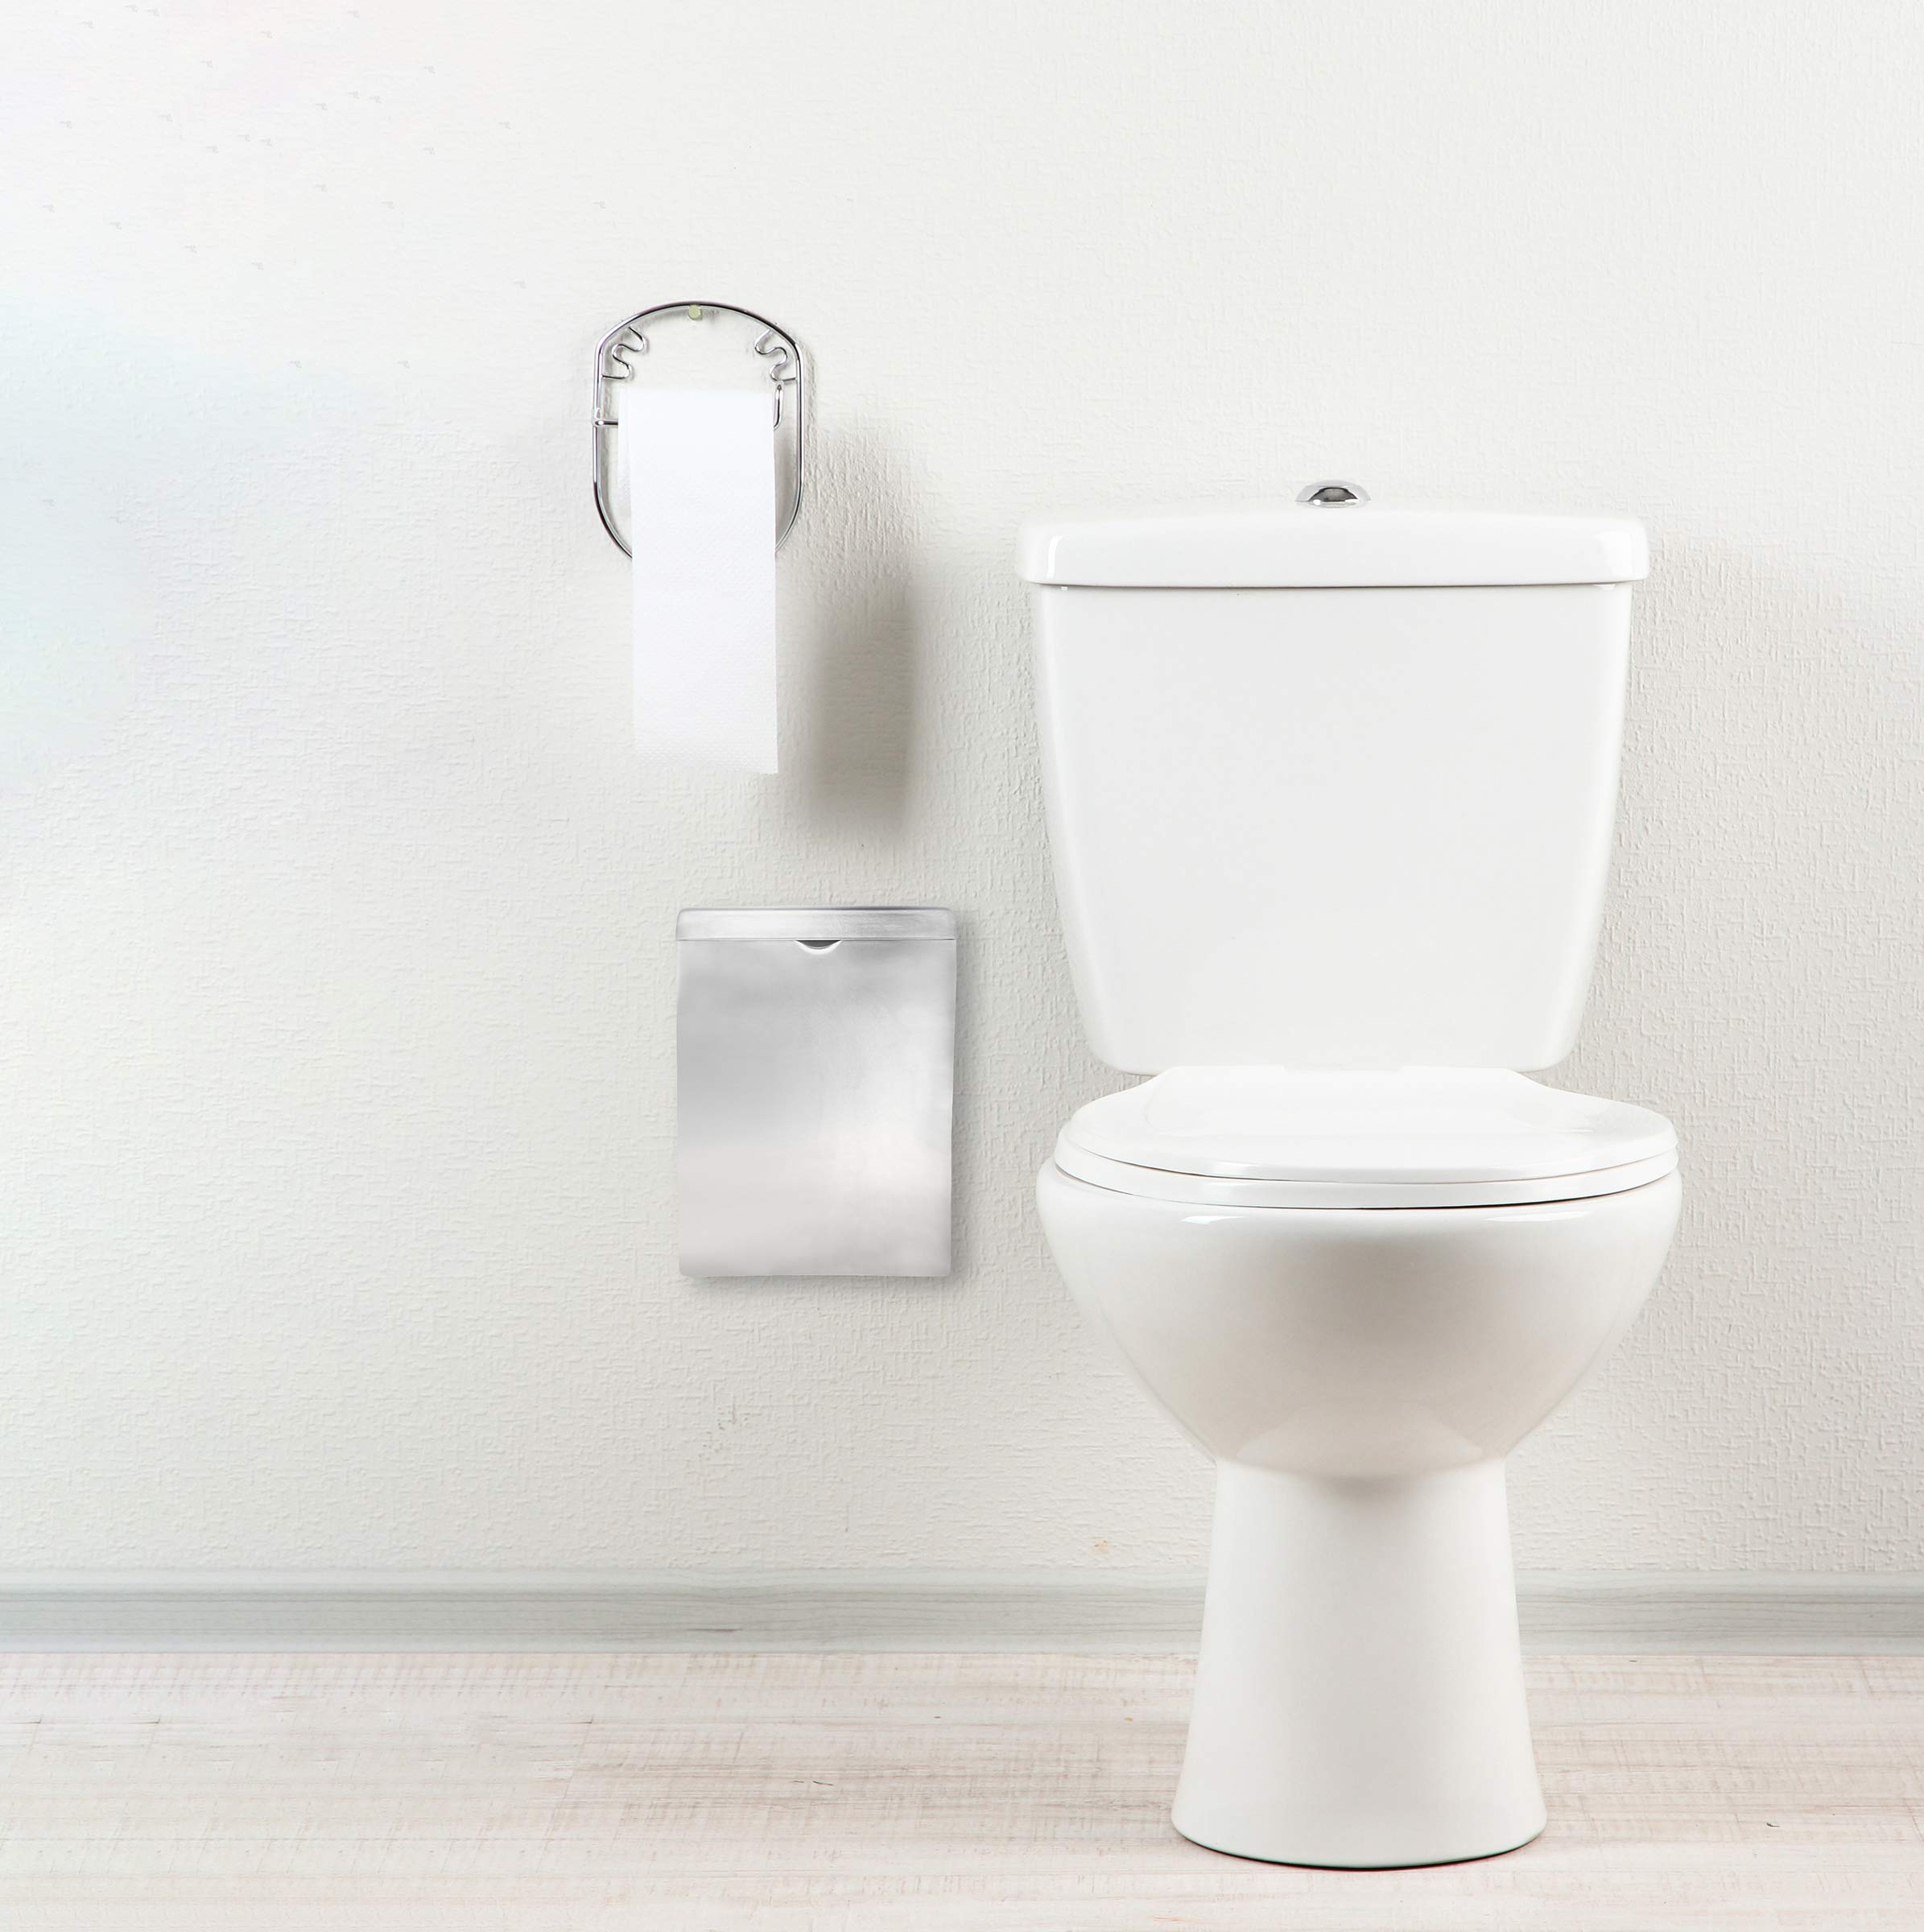 Alpine Industries Sanitary Napkin Receptacle - Easy Install, Wall Mounted Container - Provides Clean & Odor-Free Restroom for Home & Public Restrooms by Alpine Industries (Image #6)